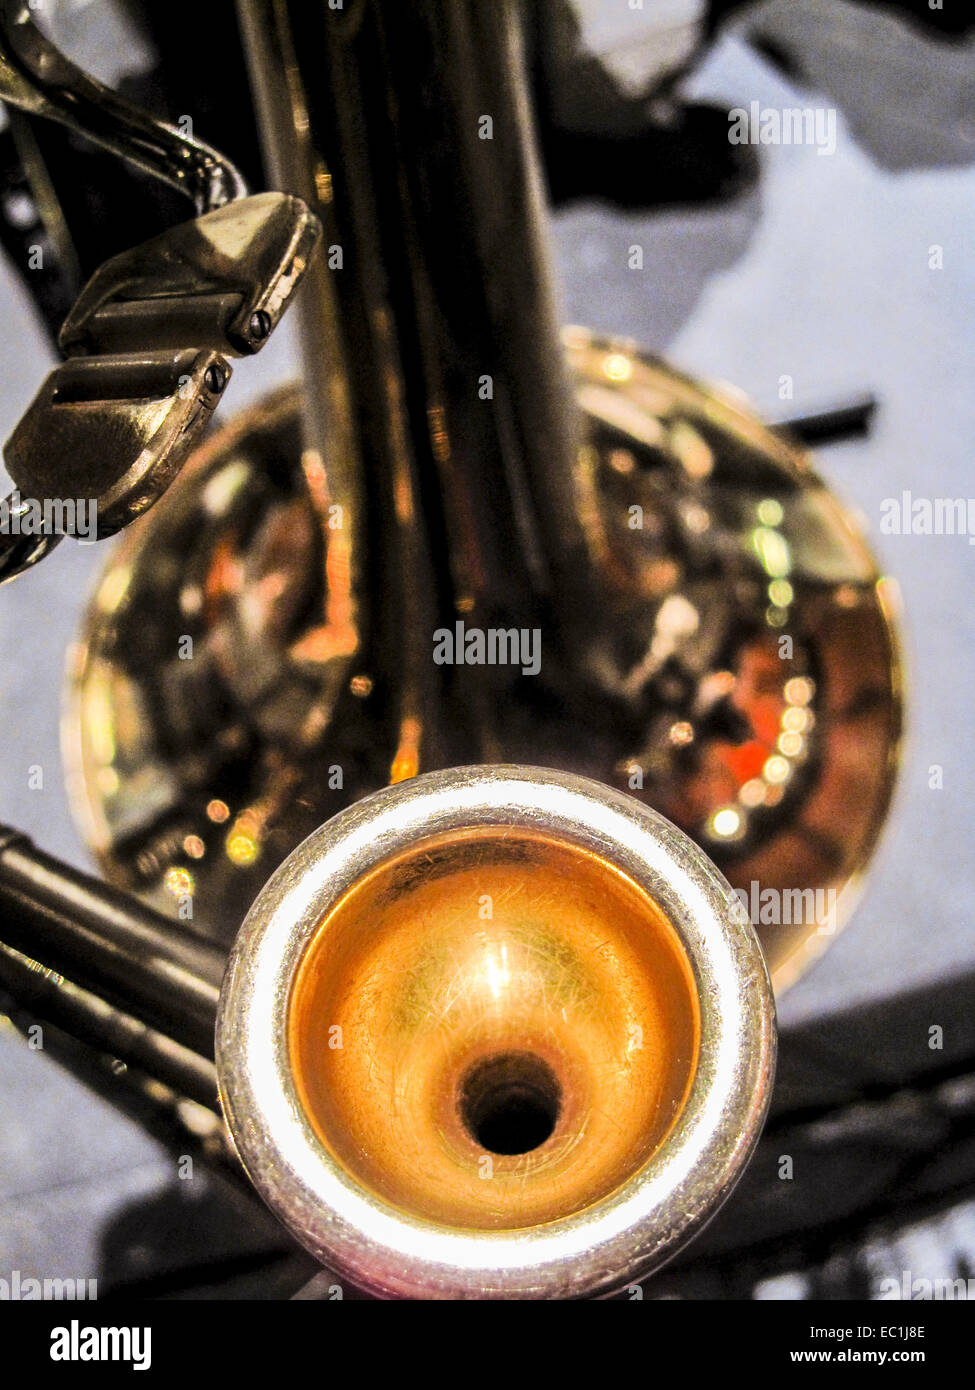 Mouthpiece, tenor trombone.  The trombone is resting on a stand. - Stock Image